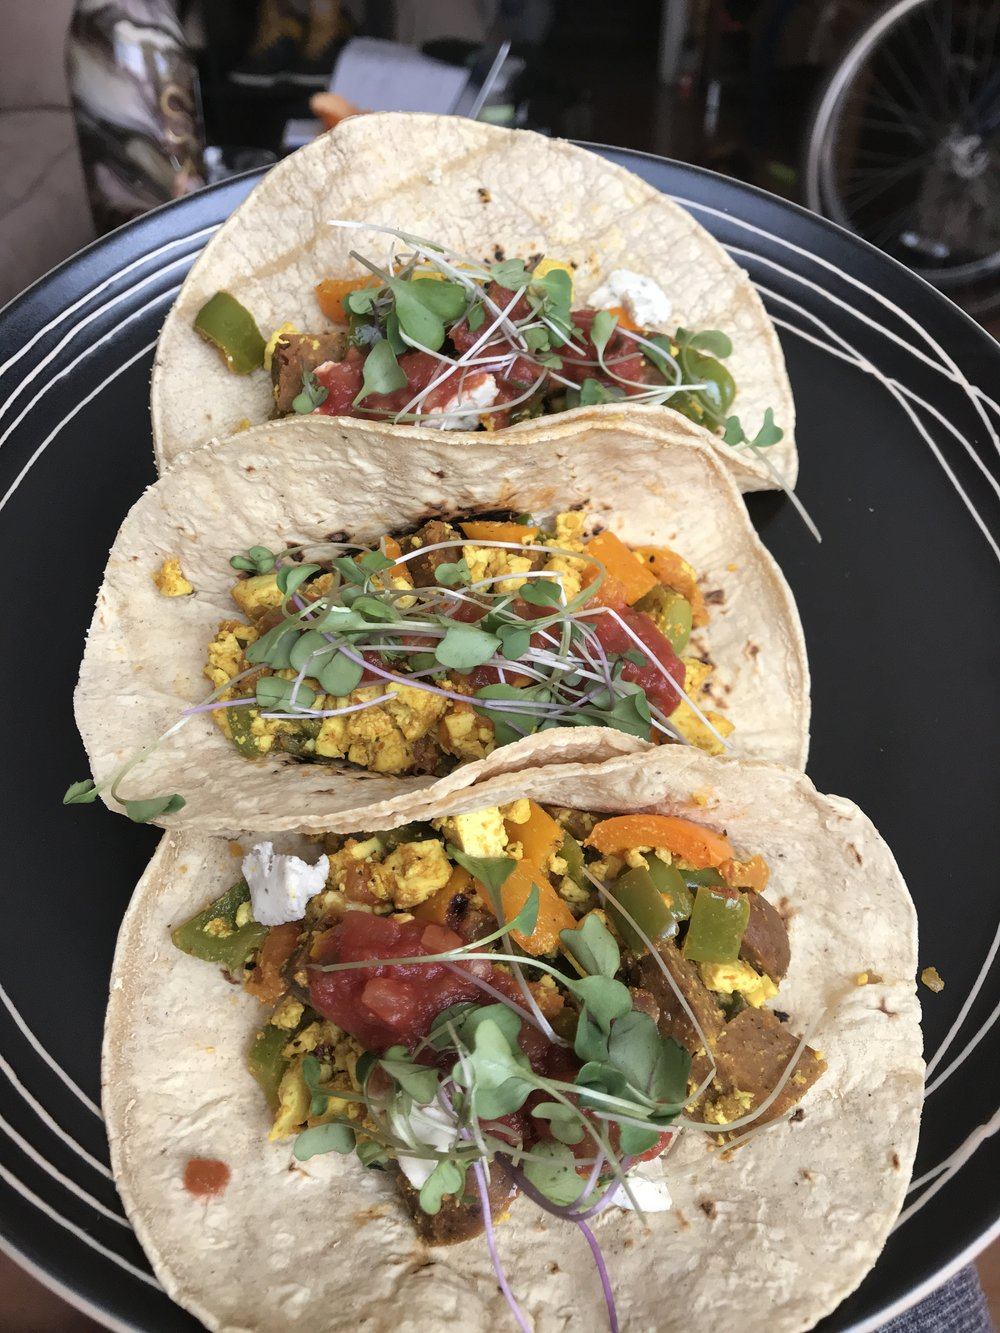 Strong 4 Pole's Vegan Breakfast Tacos